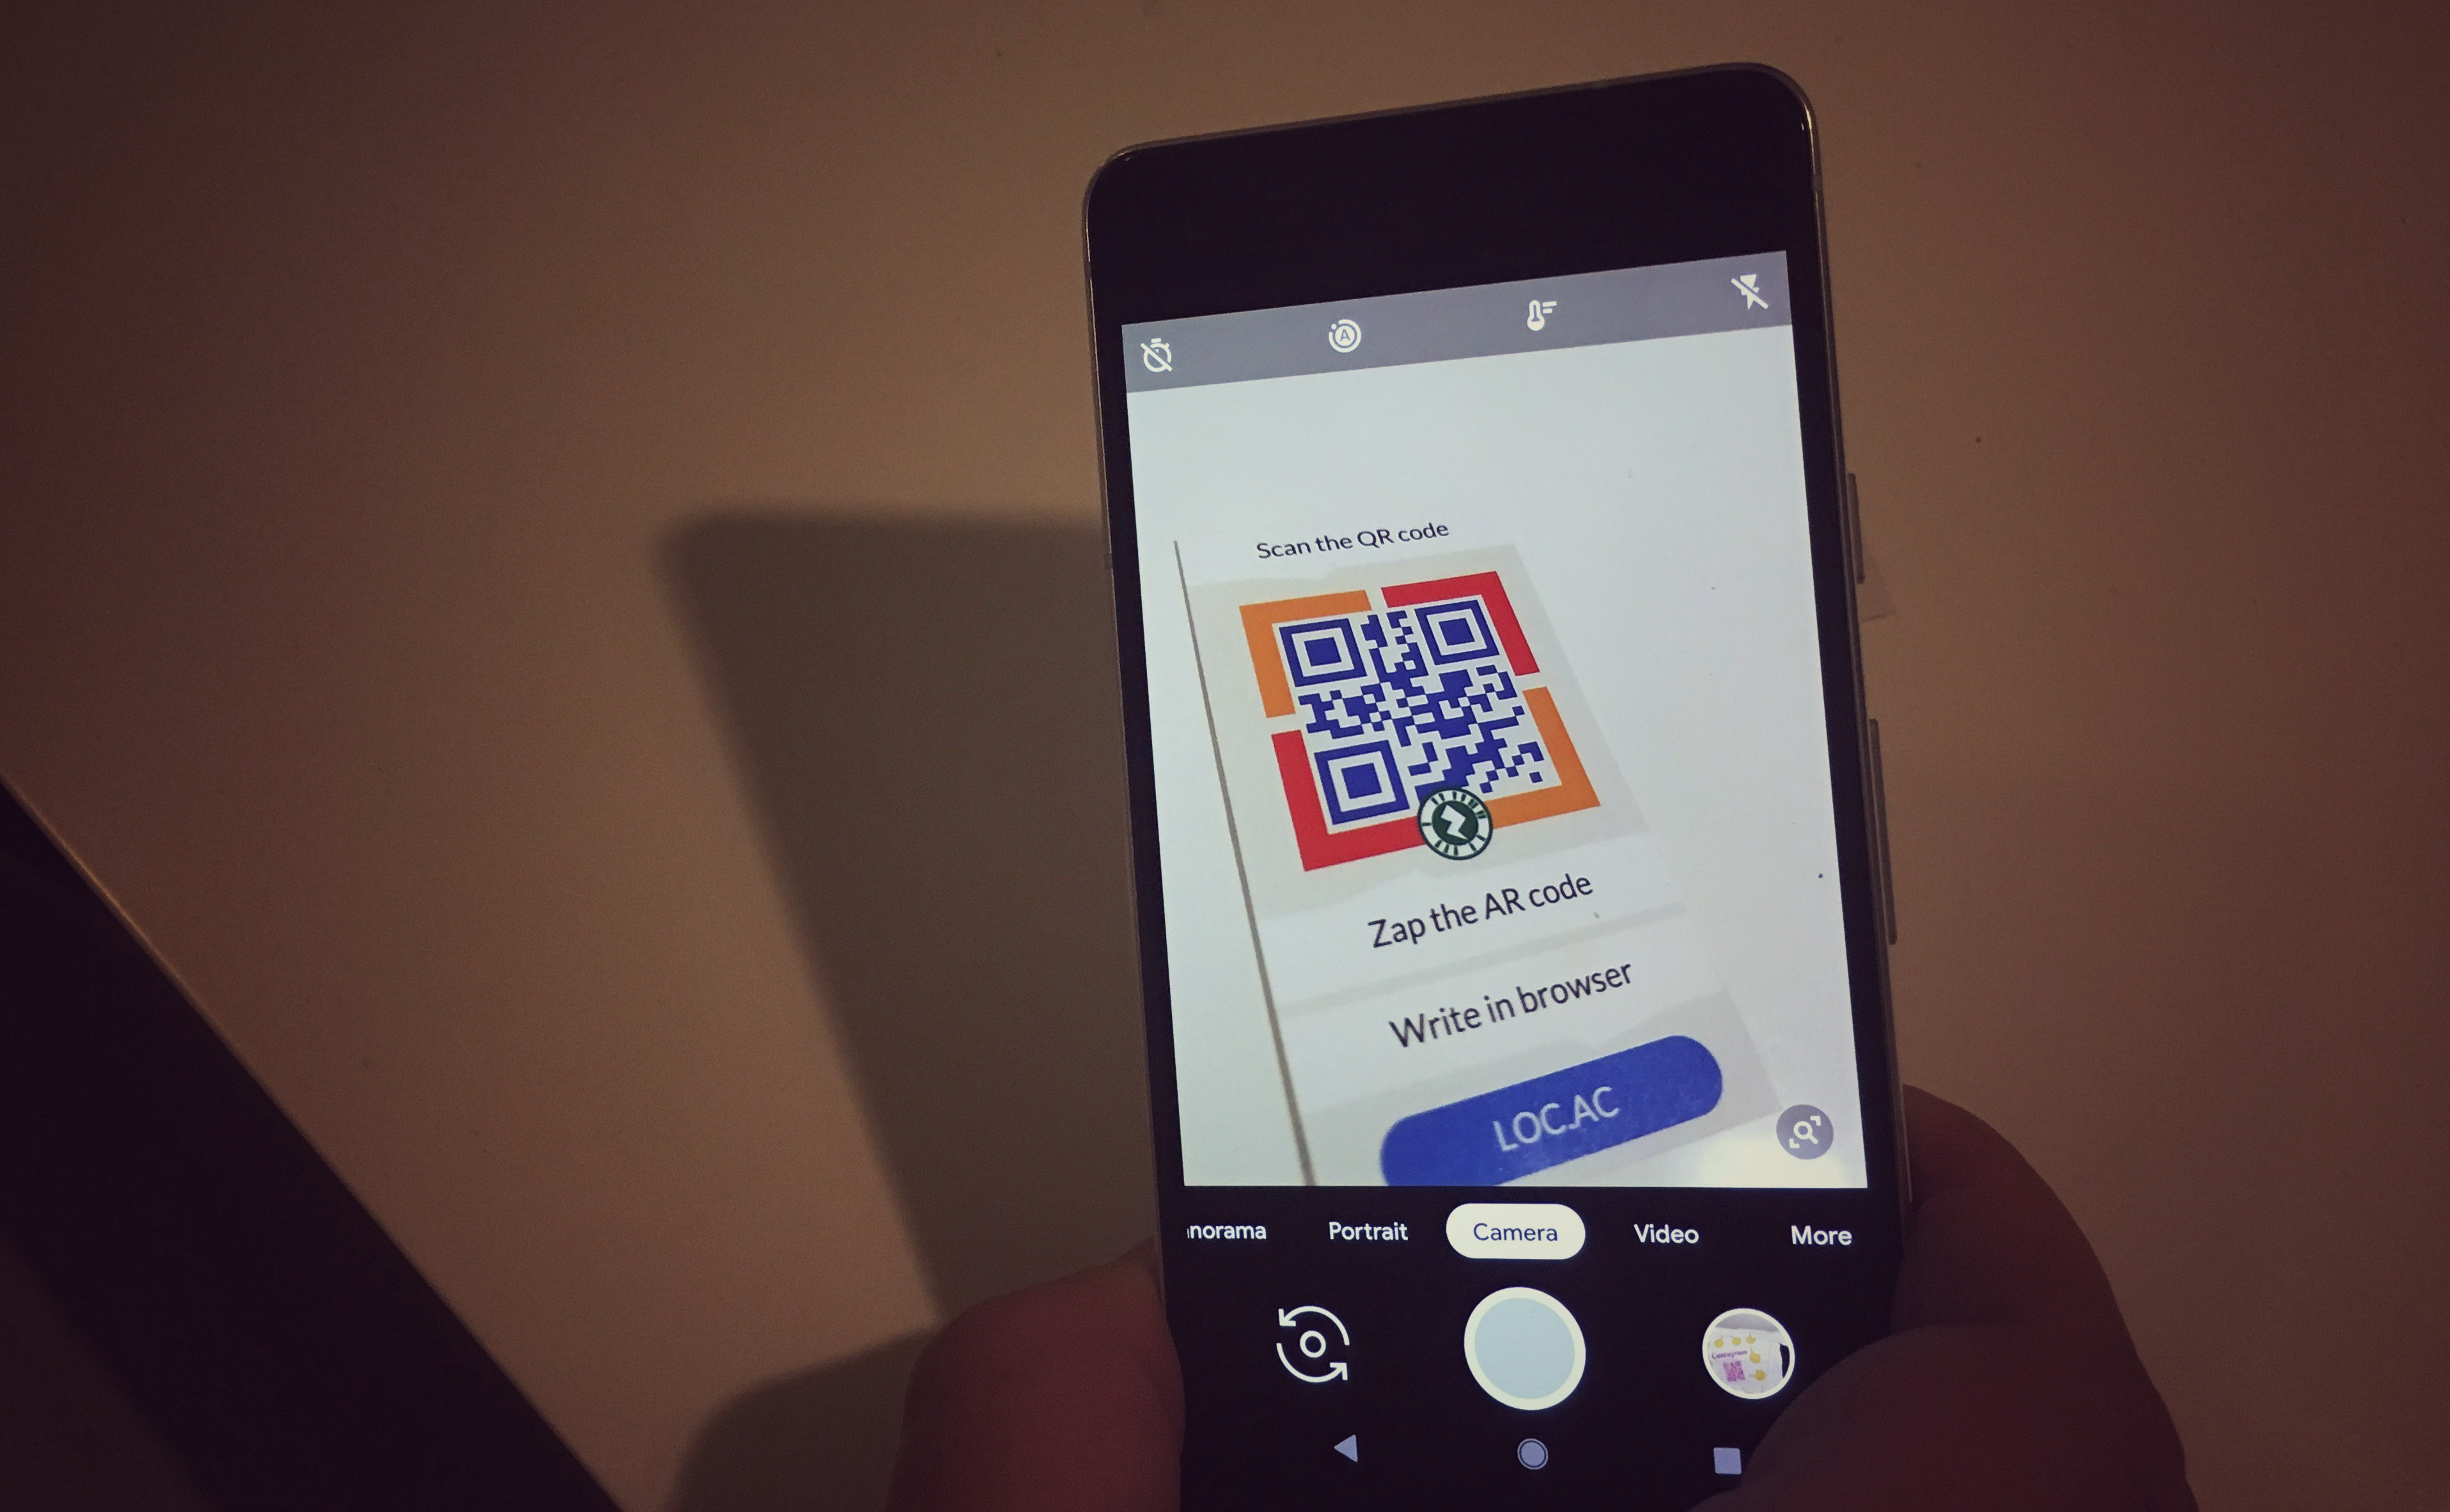 Built-in QR reader on Android - Turunen mobi - Medium